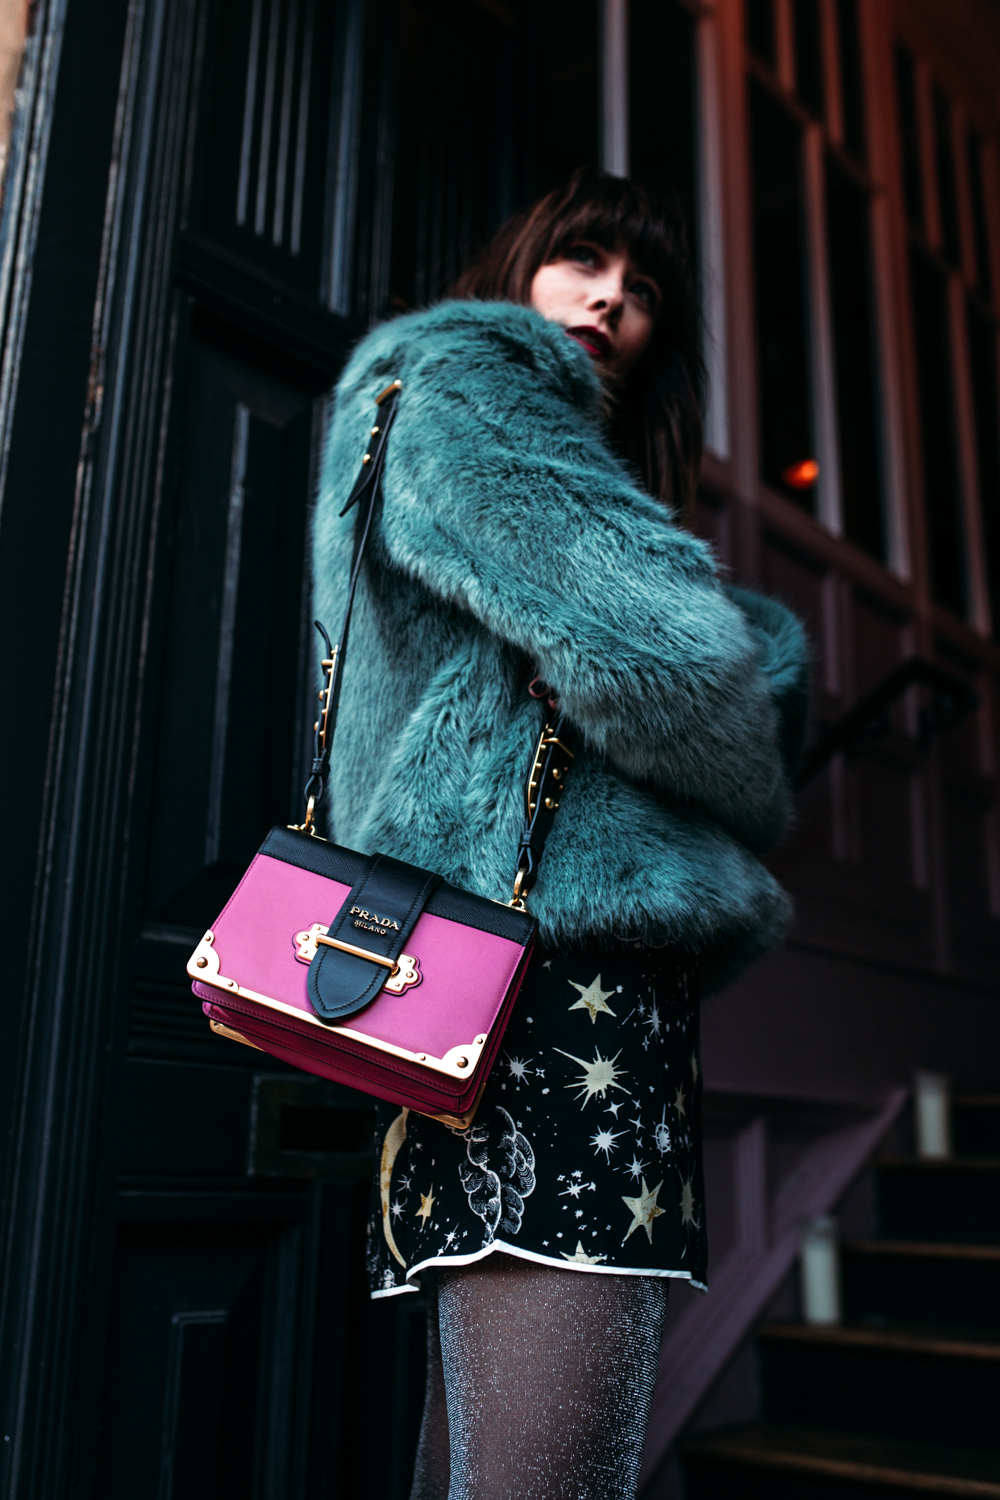 HOW TO STYLE THE PRADA CAHIER BAG